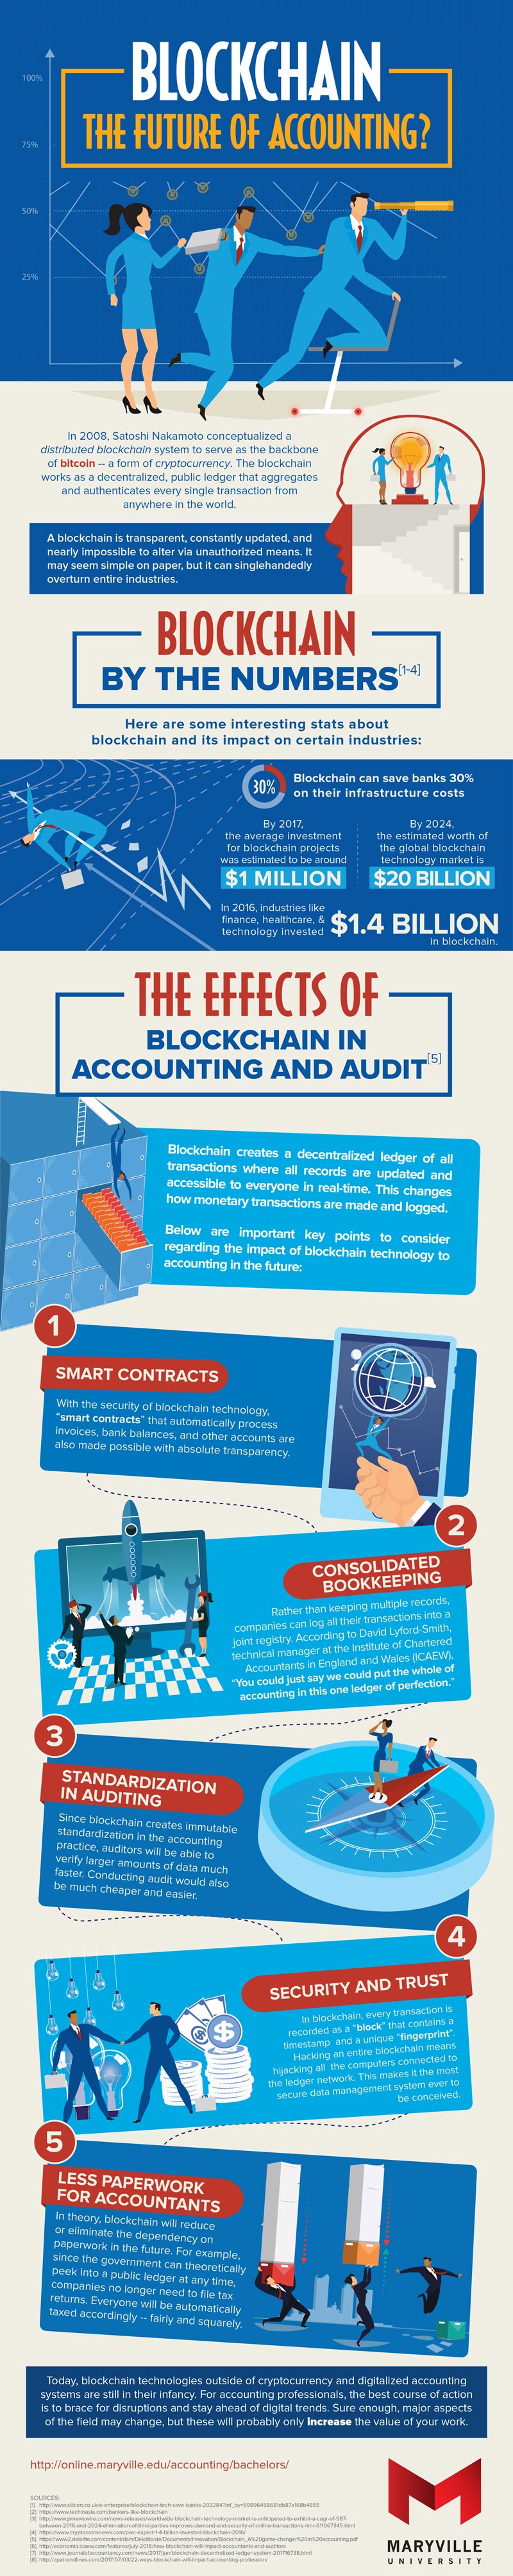 Holytransaction, Marville University infographic - Blockchain the future of accounting